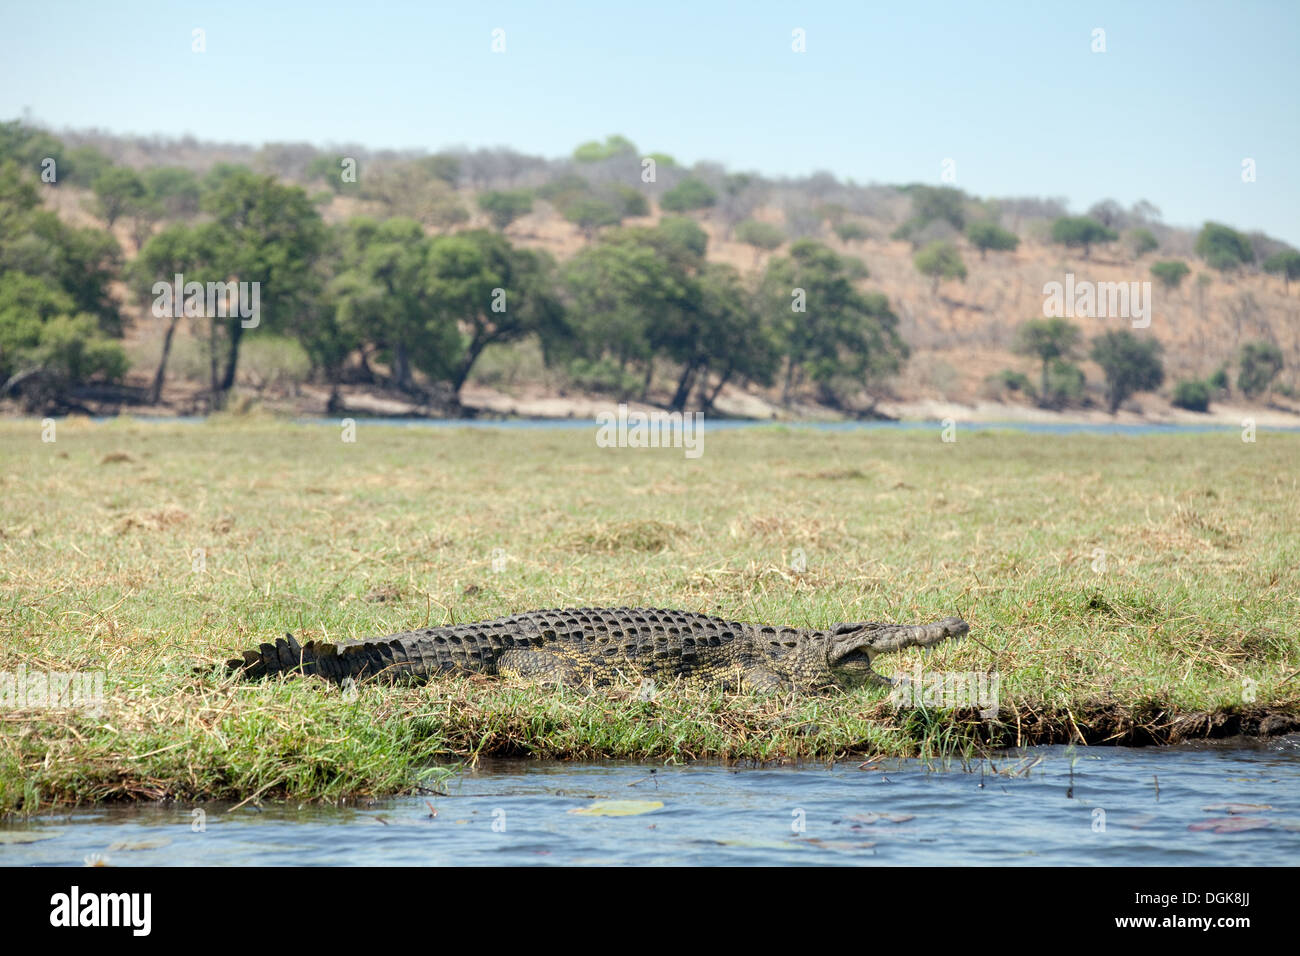 Nile Crocodile on the banks of the Chobe river, Chobe National Park, Botswana, Africa - Stock Image